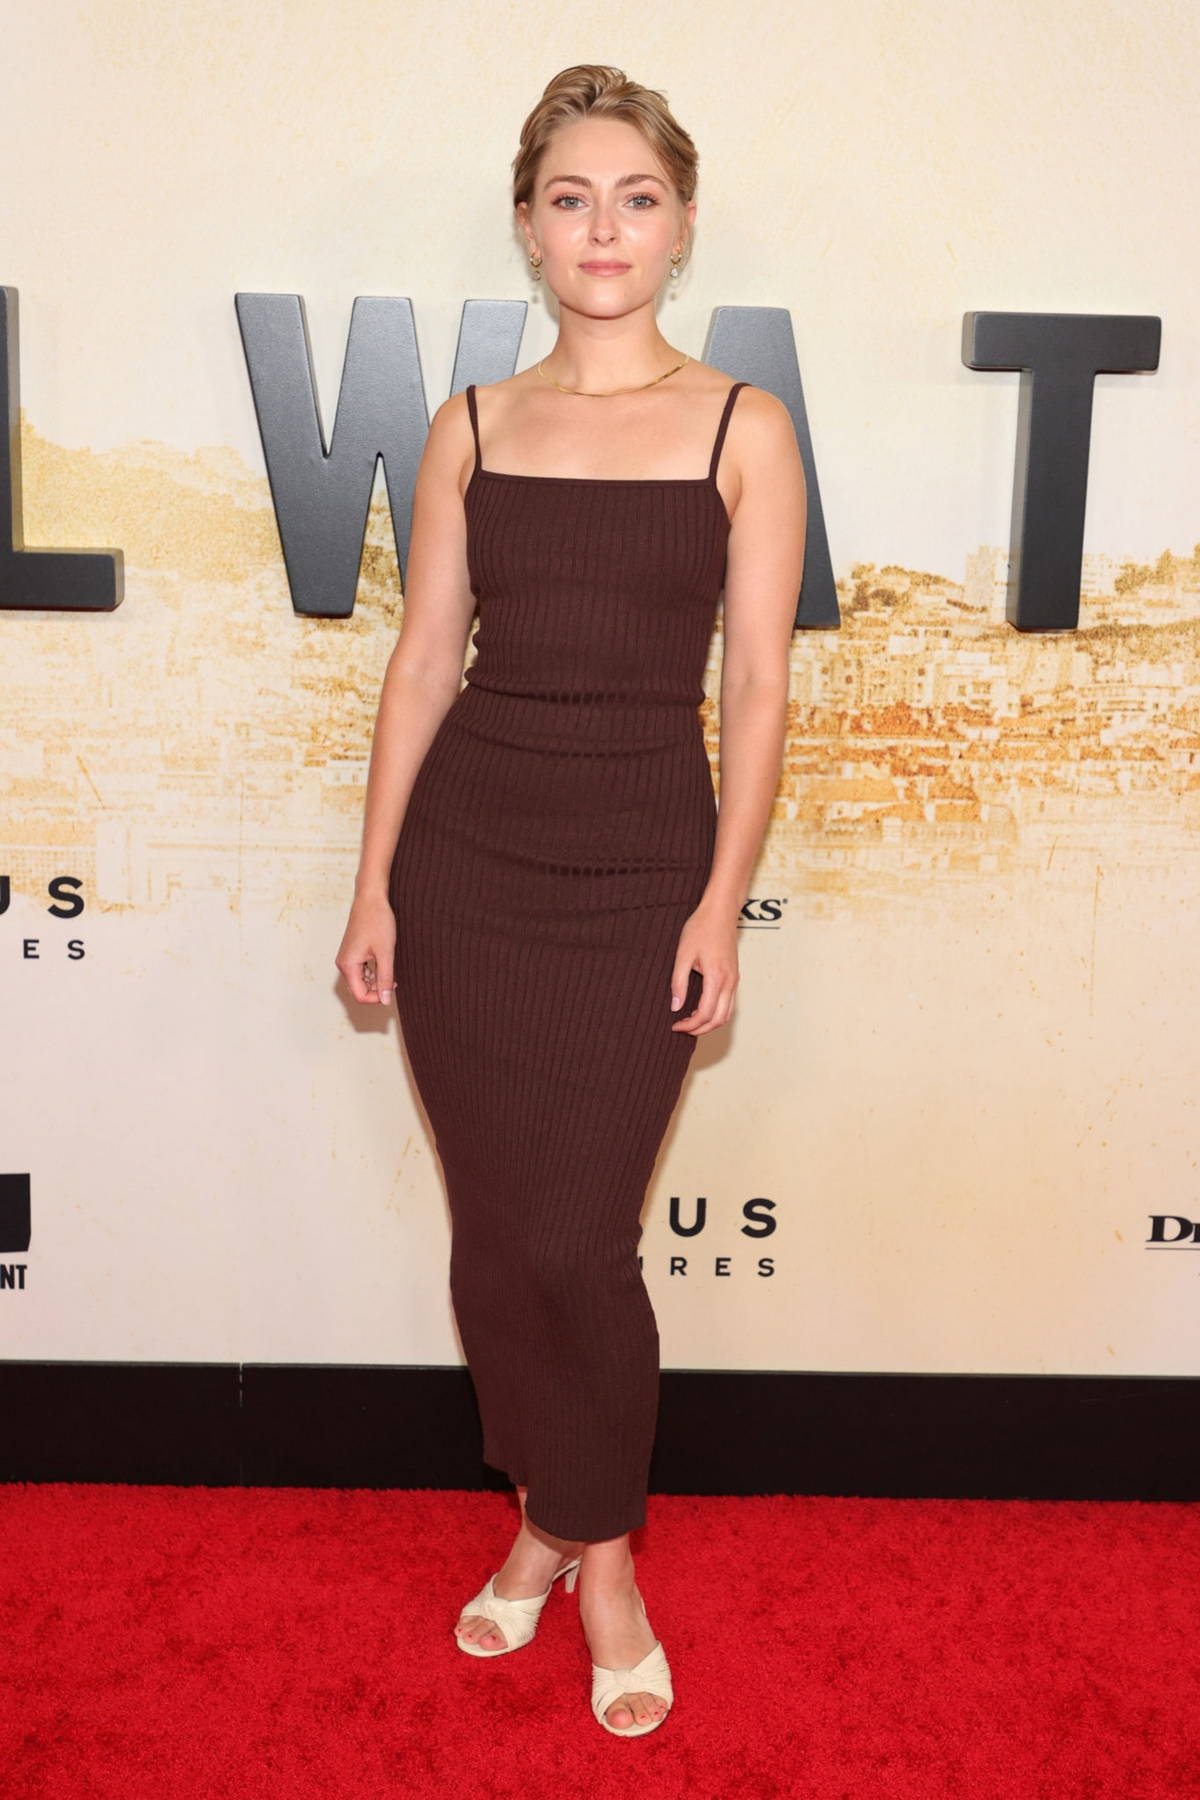 AnnaSophia Robb attends the New York Premiere of 'Stillwater' at Rose Theater, Jazz at Lincoln Center in New York City